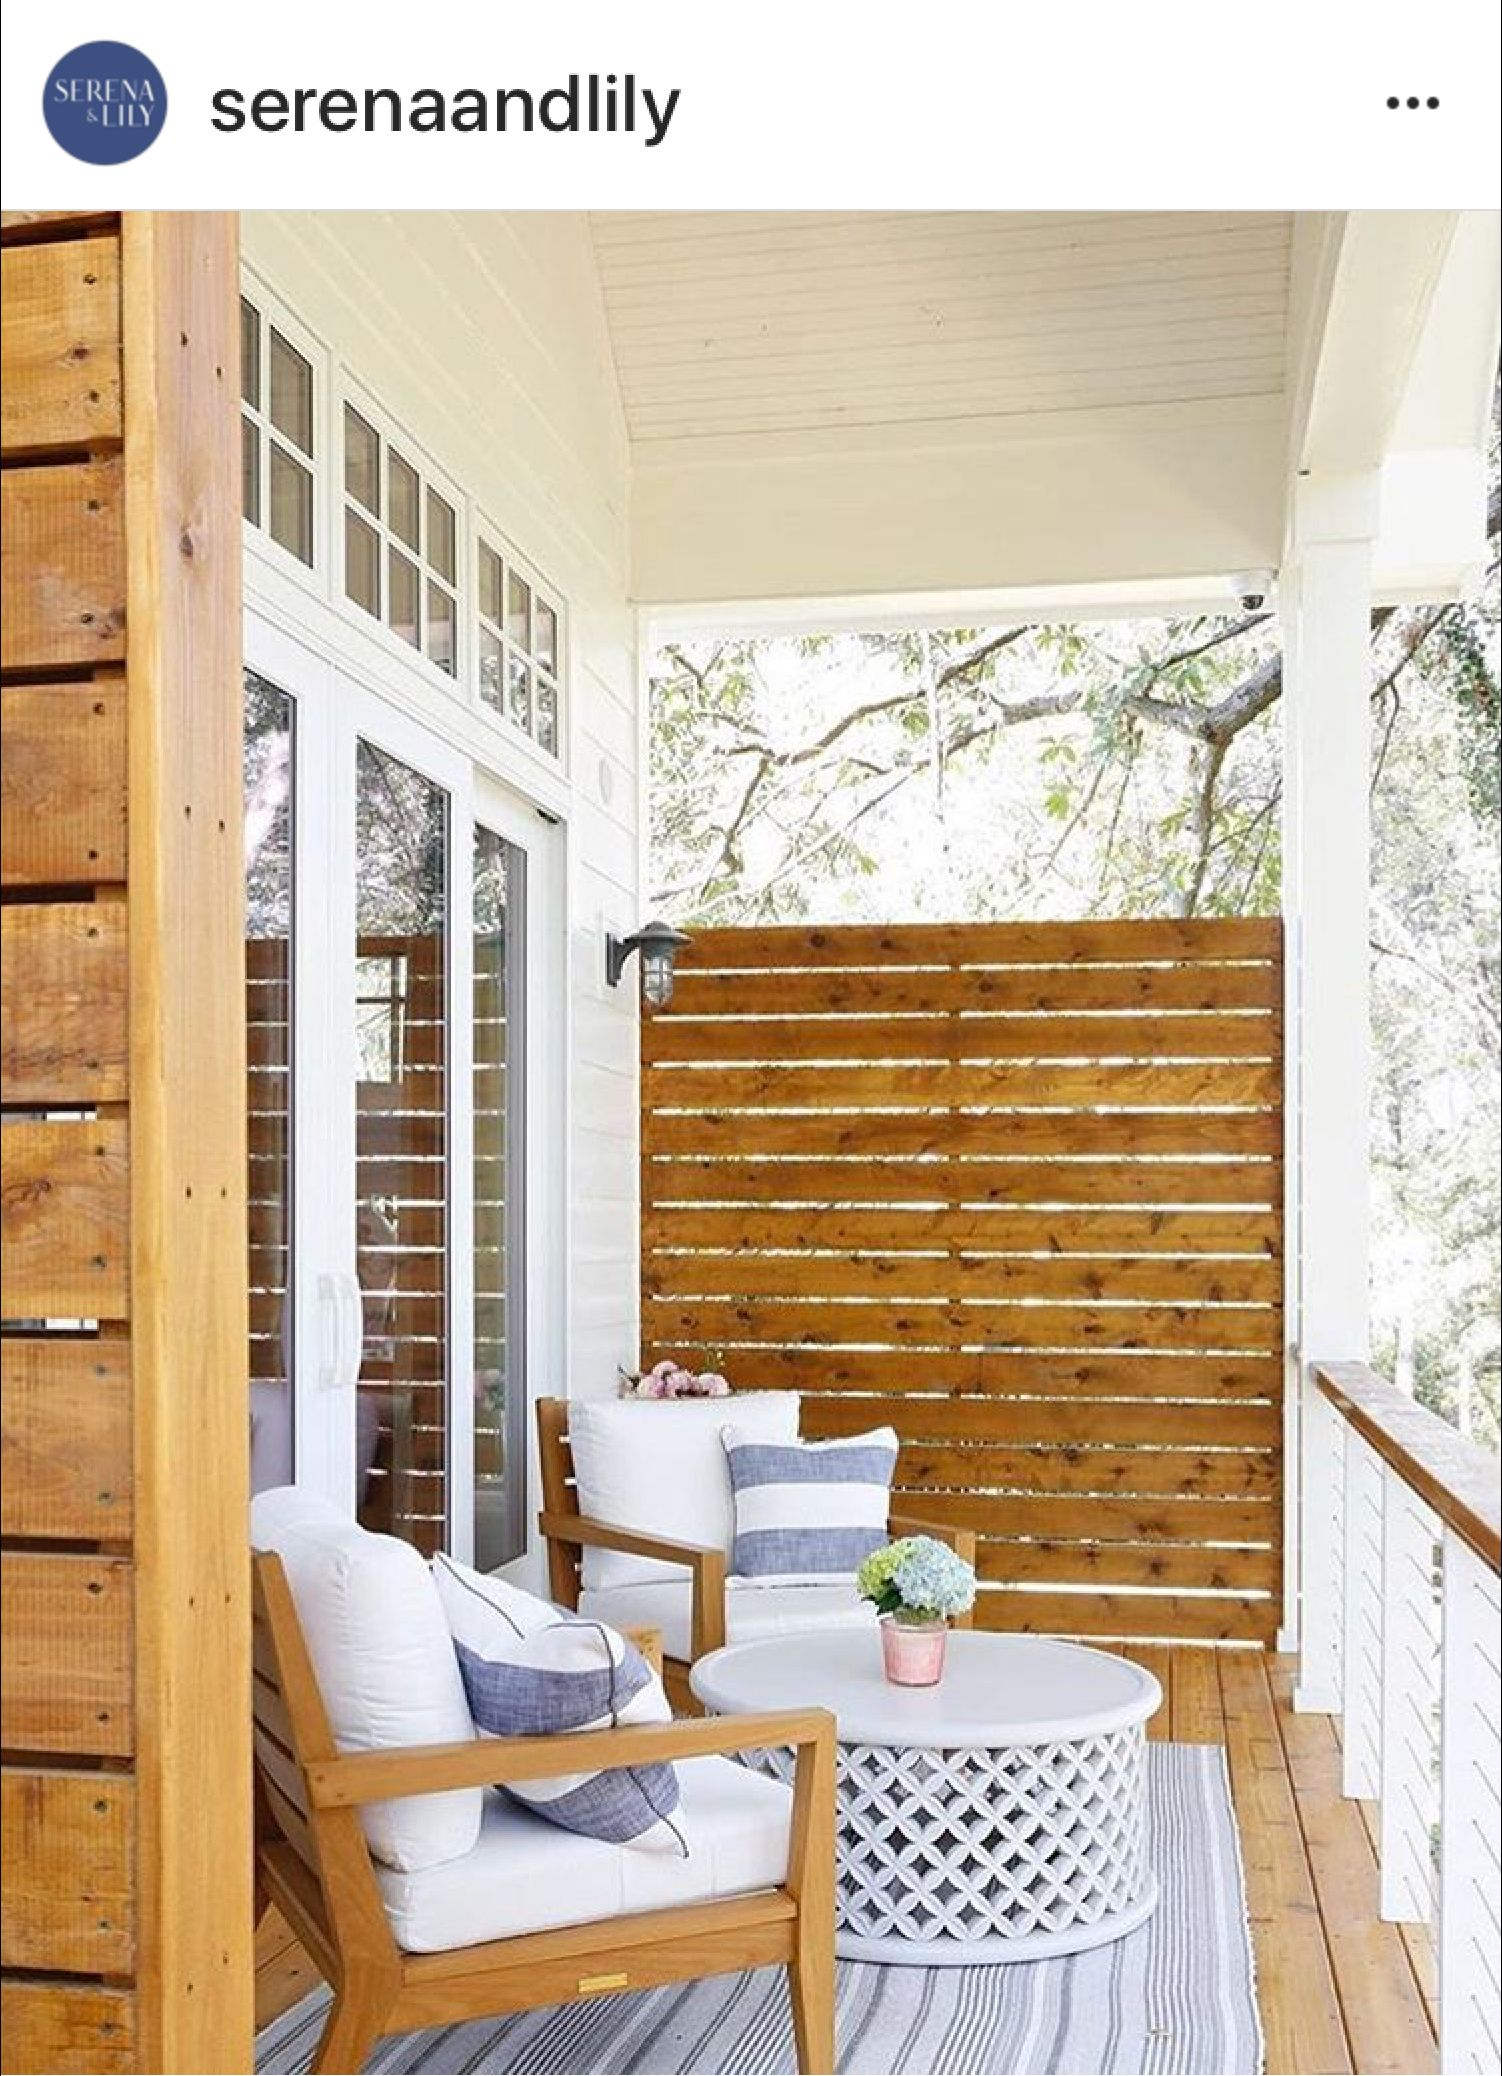 Pin By Paisly13 On House Styles Small Outdoor Spaces Apartment